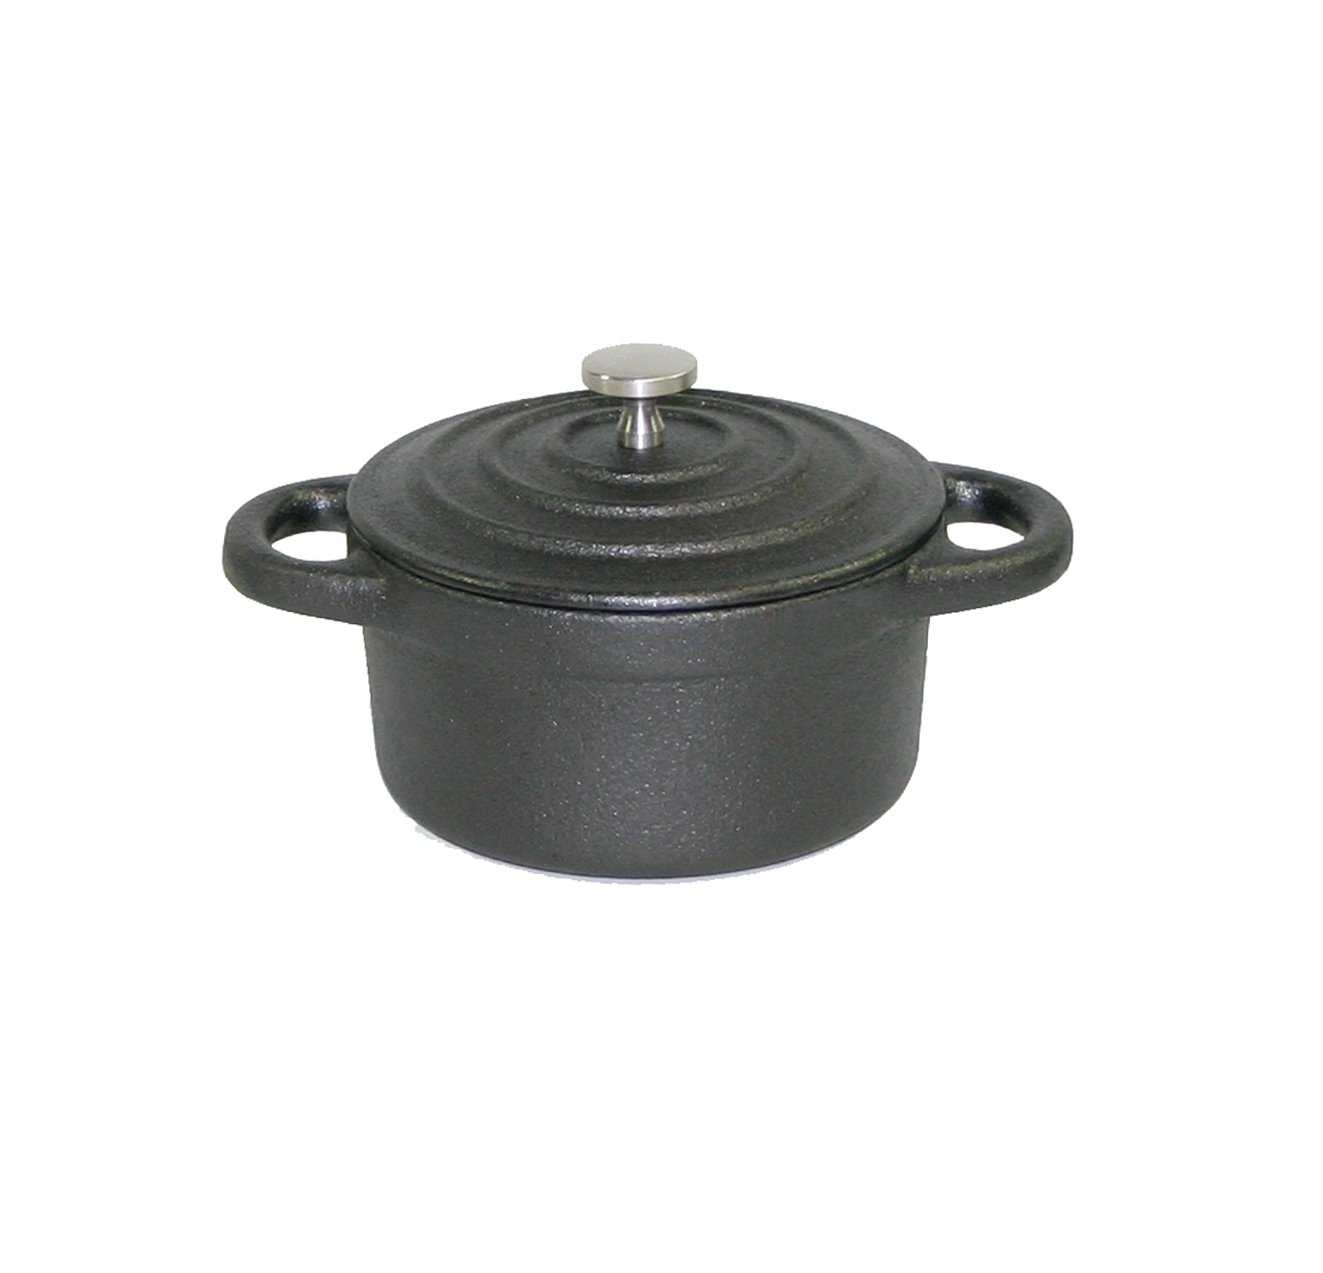 Paderno World Cuisine 0.27-Quart Round Cast-Iron Casserole, Black